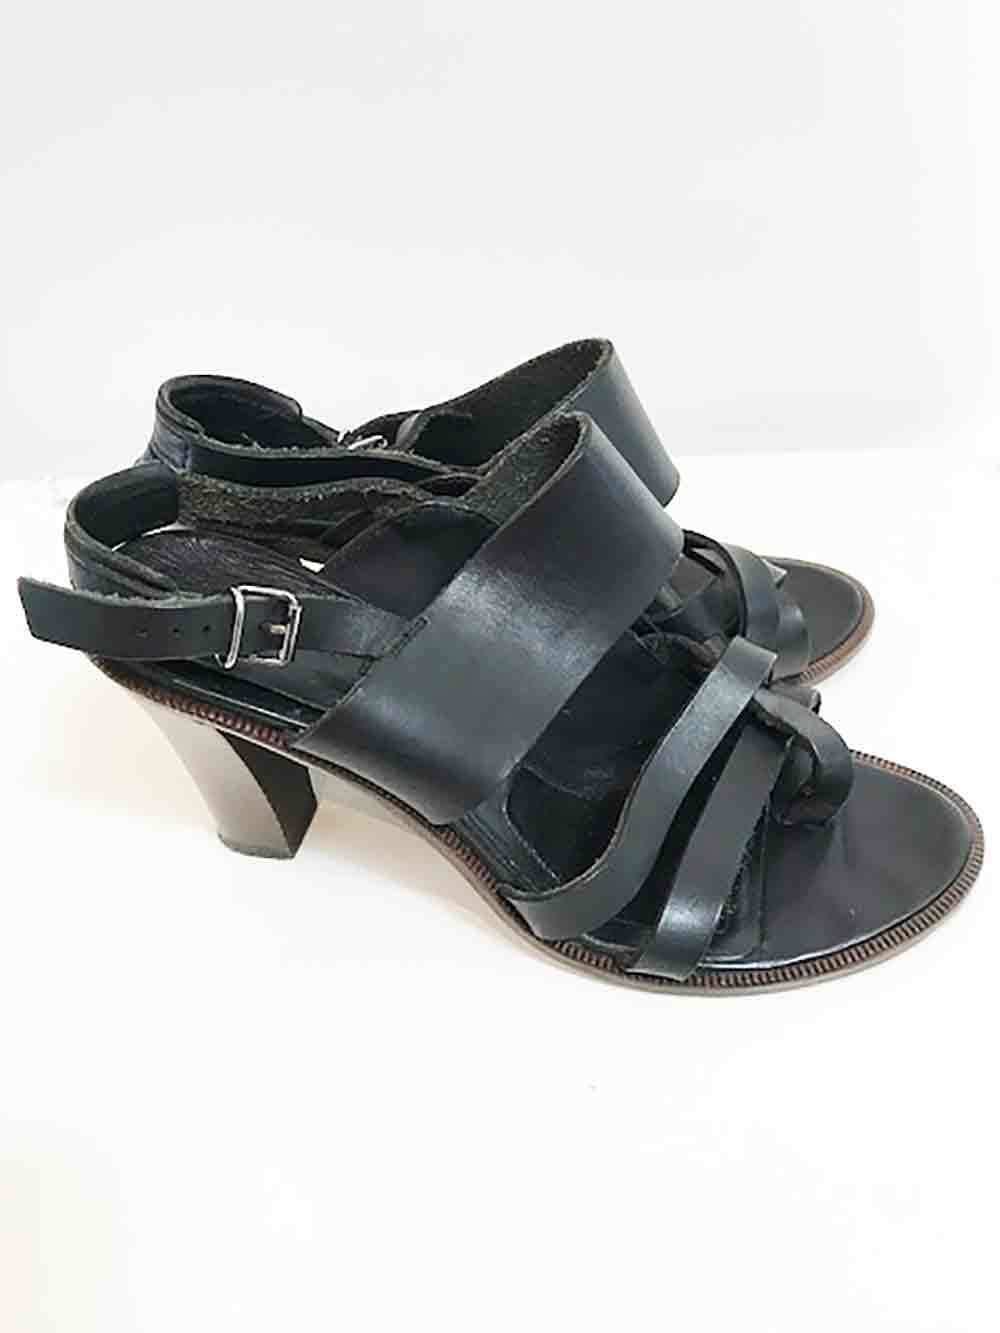 Designer  Veronique Branquinho Size 37.5 Sandal Black Leather Women's shoes